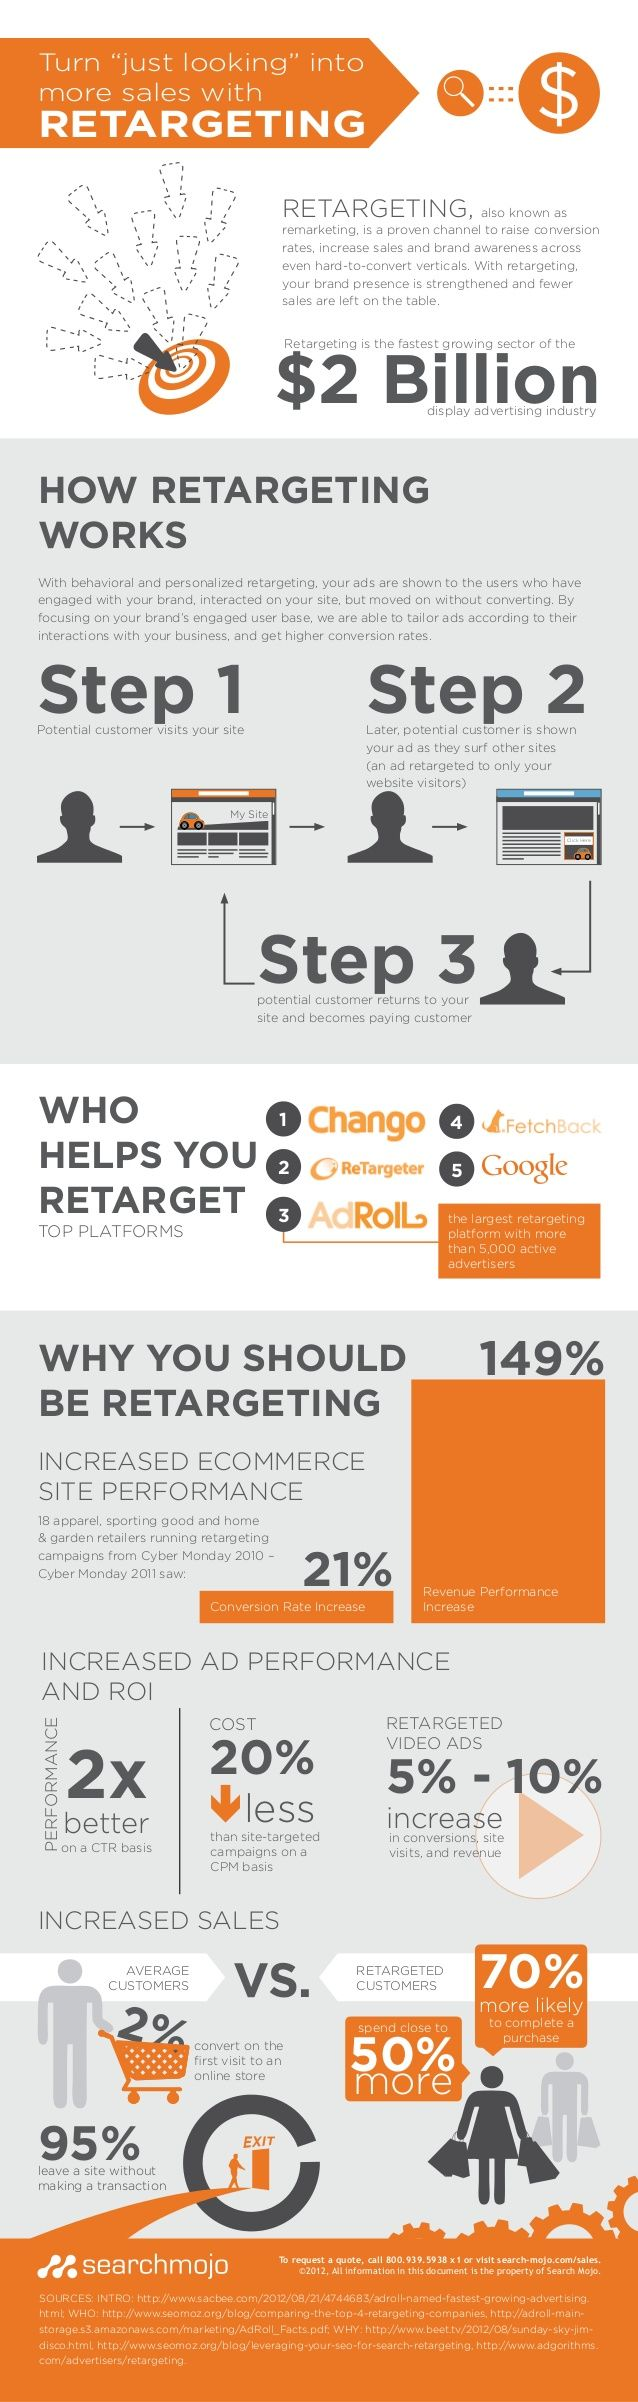 """INFOGRAPHIC: Turn """"Just Looking"""" into More Sales with Retargeting  by Marketing Mojo via slideshare"""